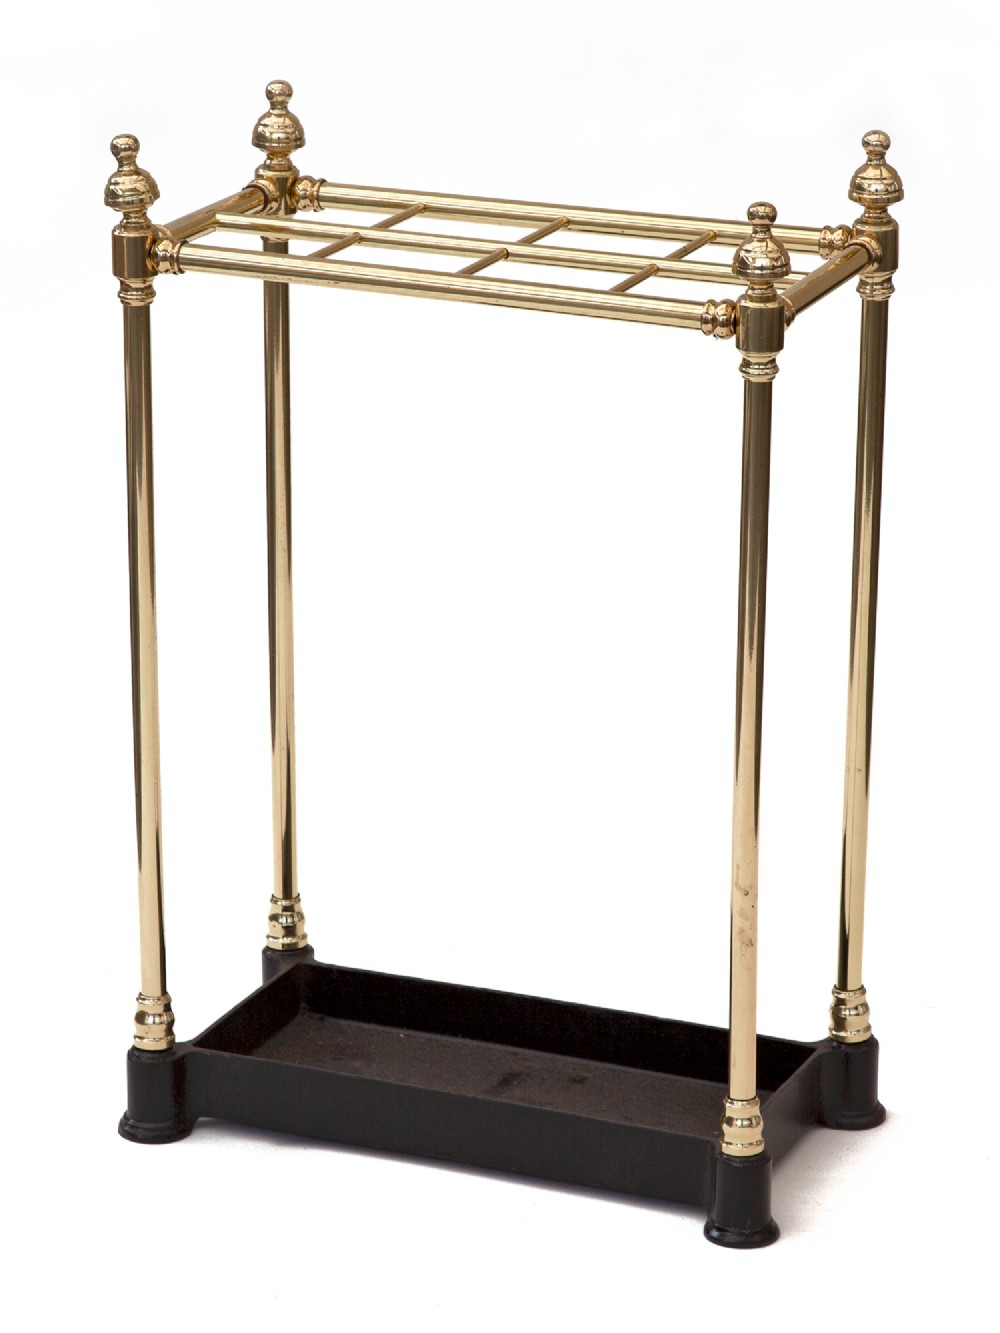 eight section brass and cast iron stick or umbrella stand